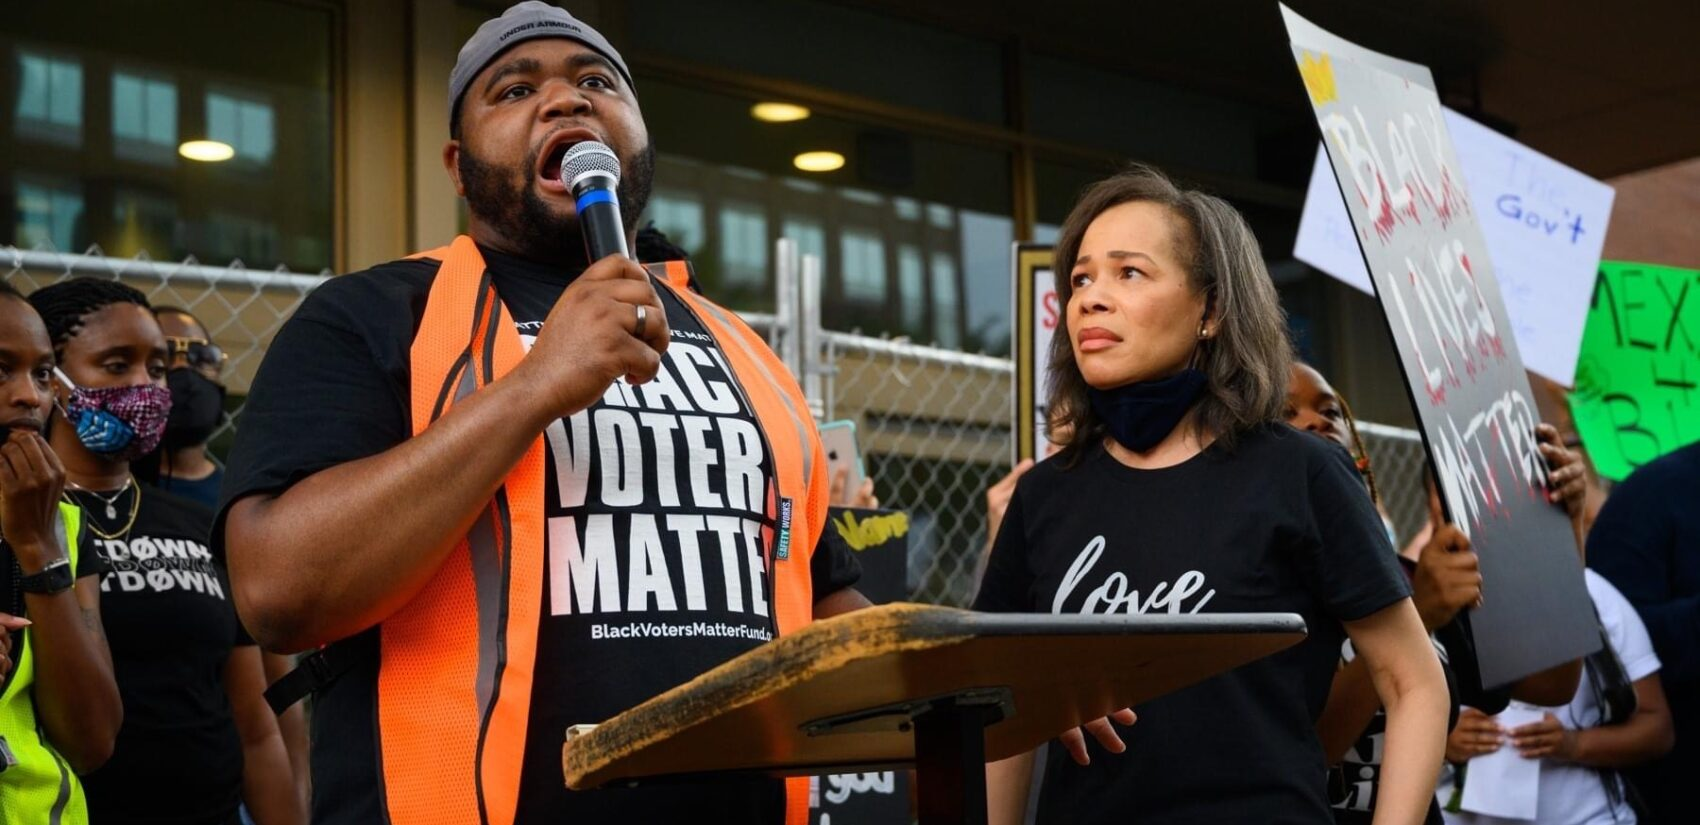 Organizer Coby Owens, joined by U.S. Rep. Lisa Blunt Rochester at a Wilmington protest in June, says the use of deadly force law needs to be amended or scrapped. (Courtesy of Coby Owens)